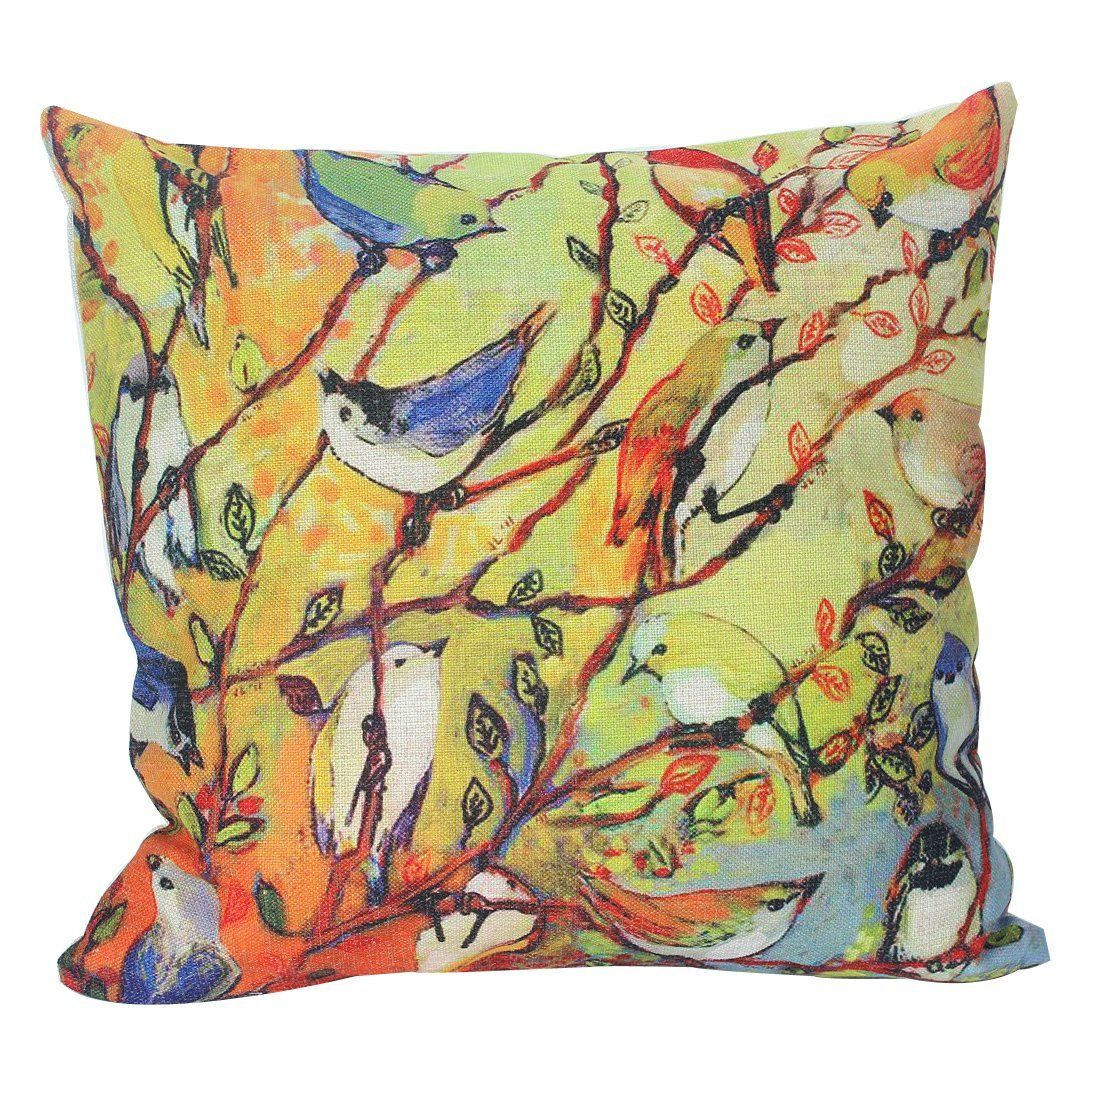 Decorative Spring Pillows can freshen up a room quickly and economically. Fresh spring colors and themes are a breath of fresh air after the winter.